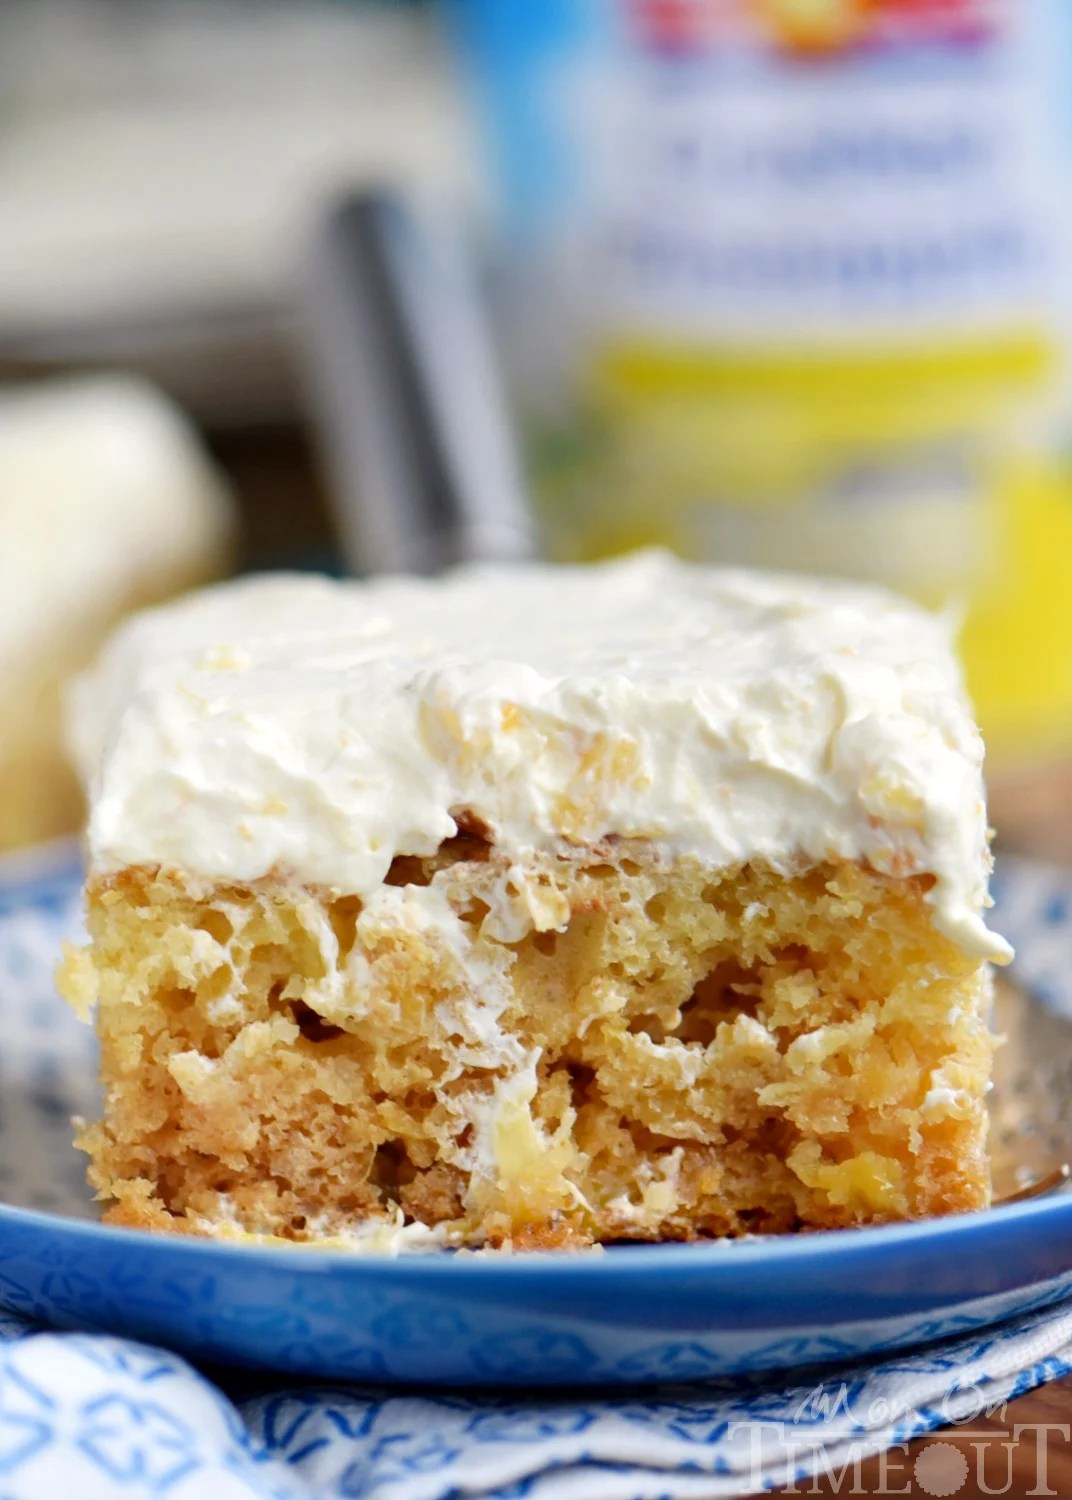 Frosting Cake Pineapple Coconut